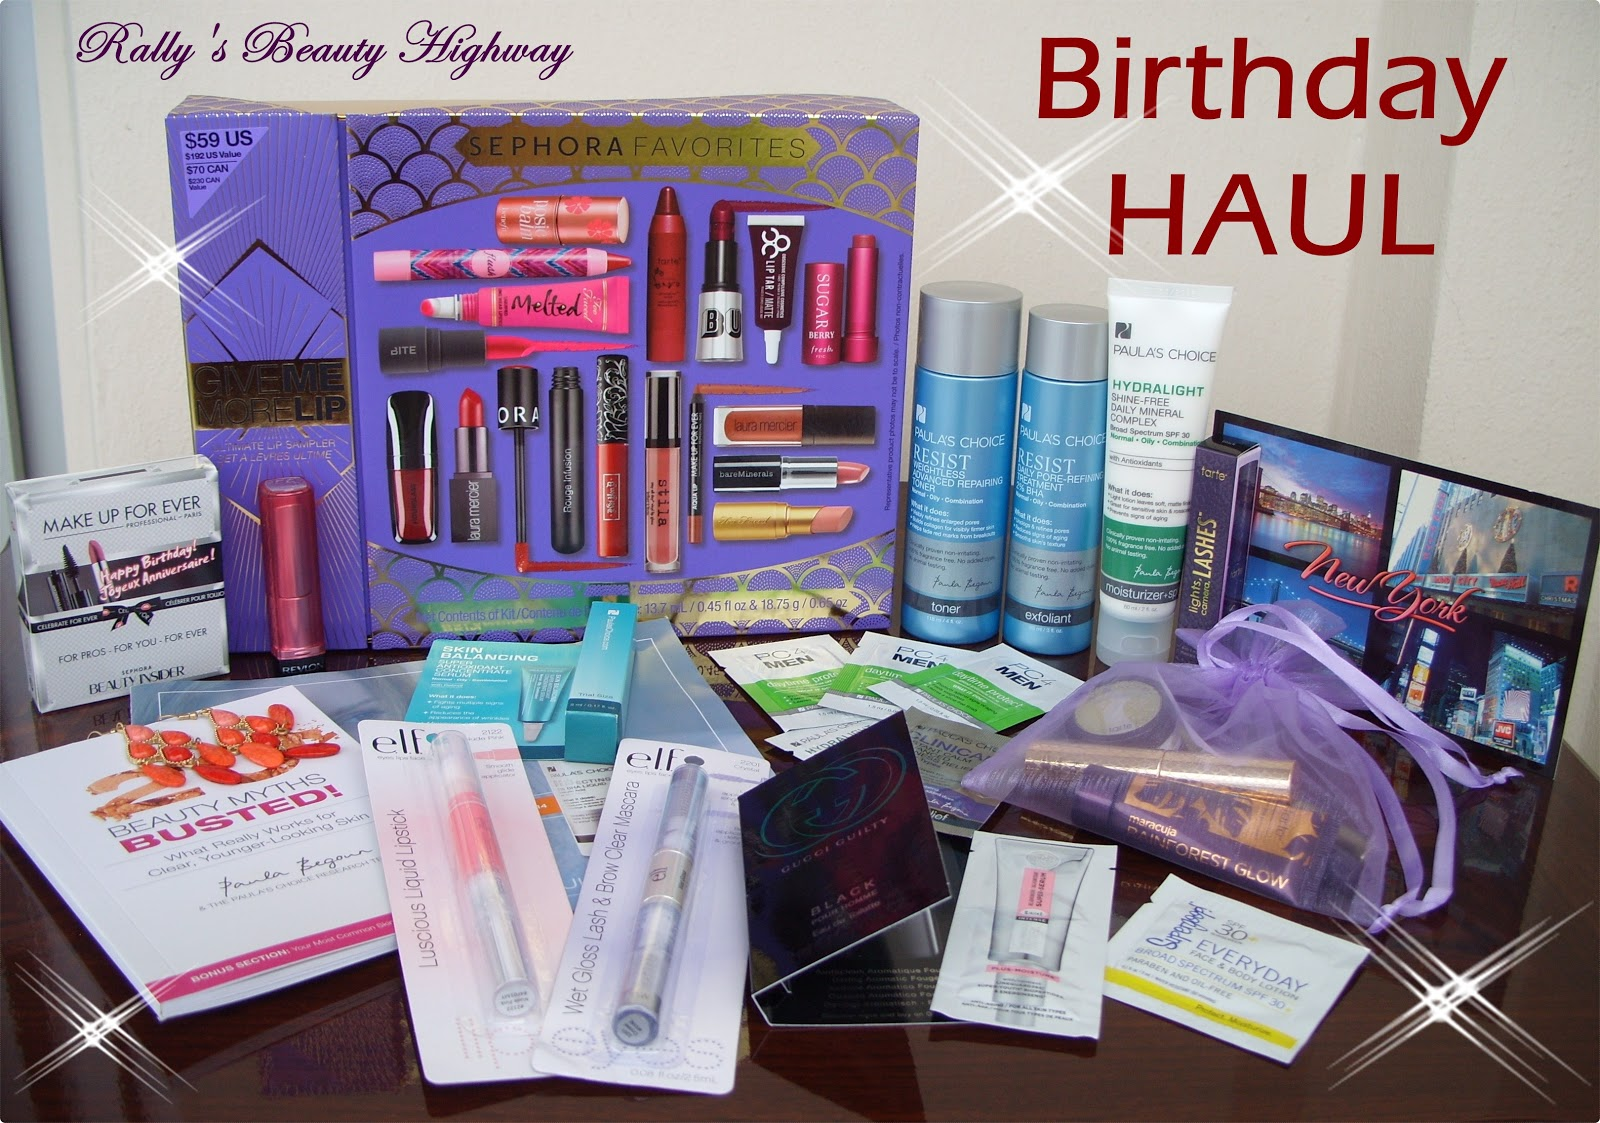 beauty HAUL, Sephora, Paula's Choice, Elf, Tarte, Revlon